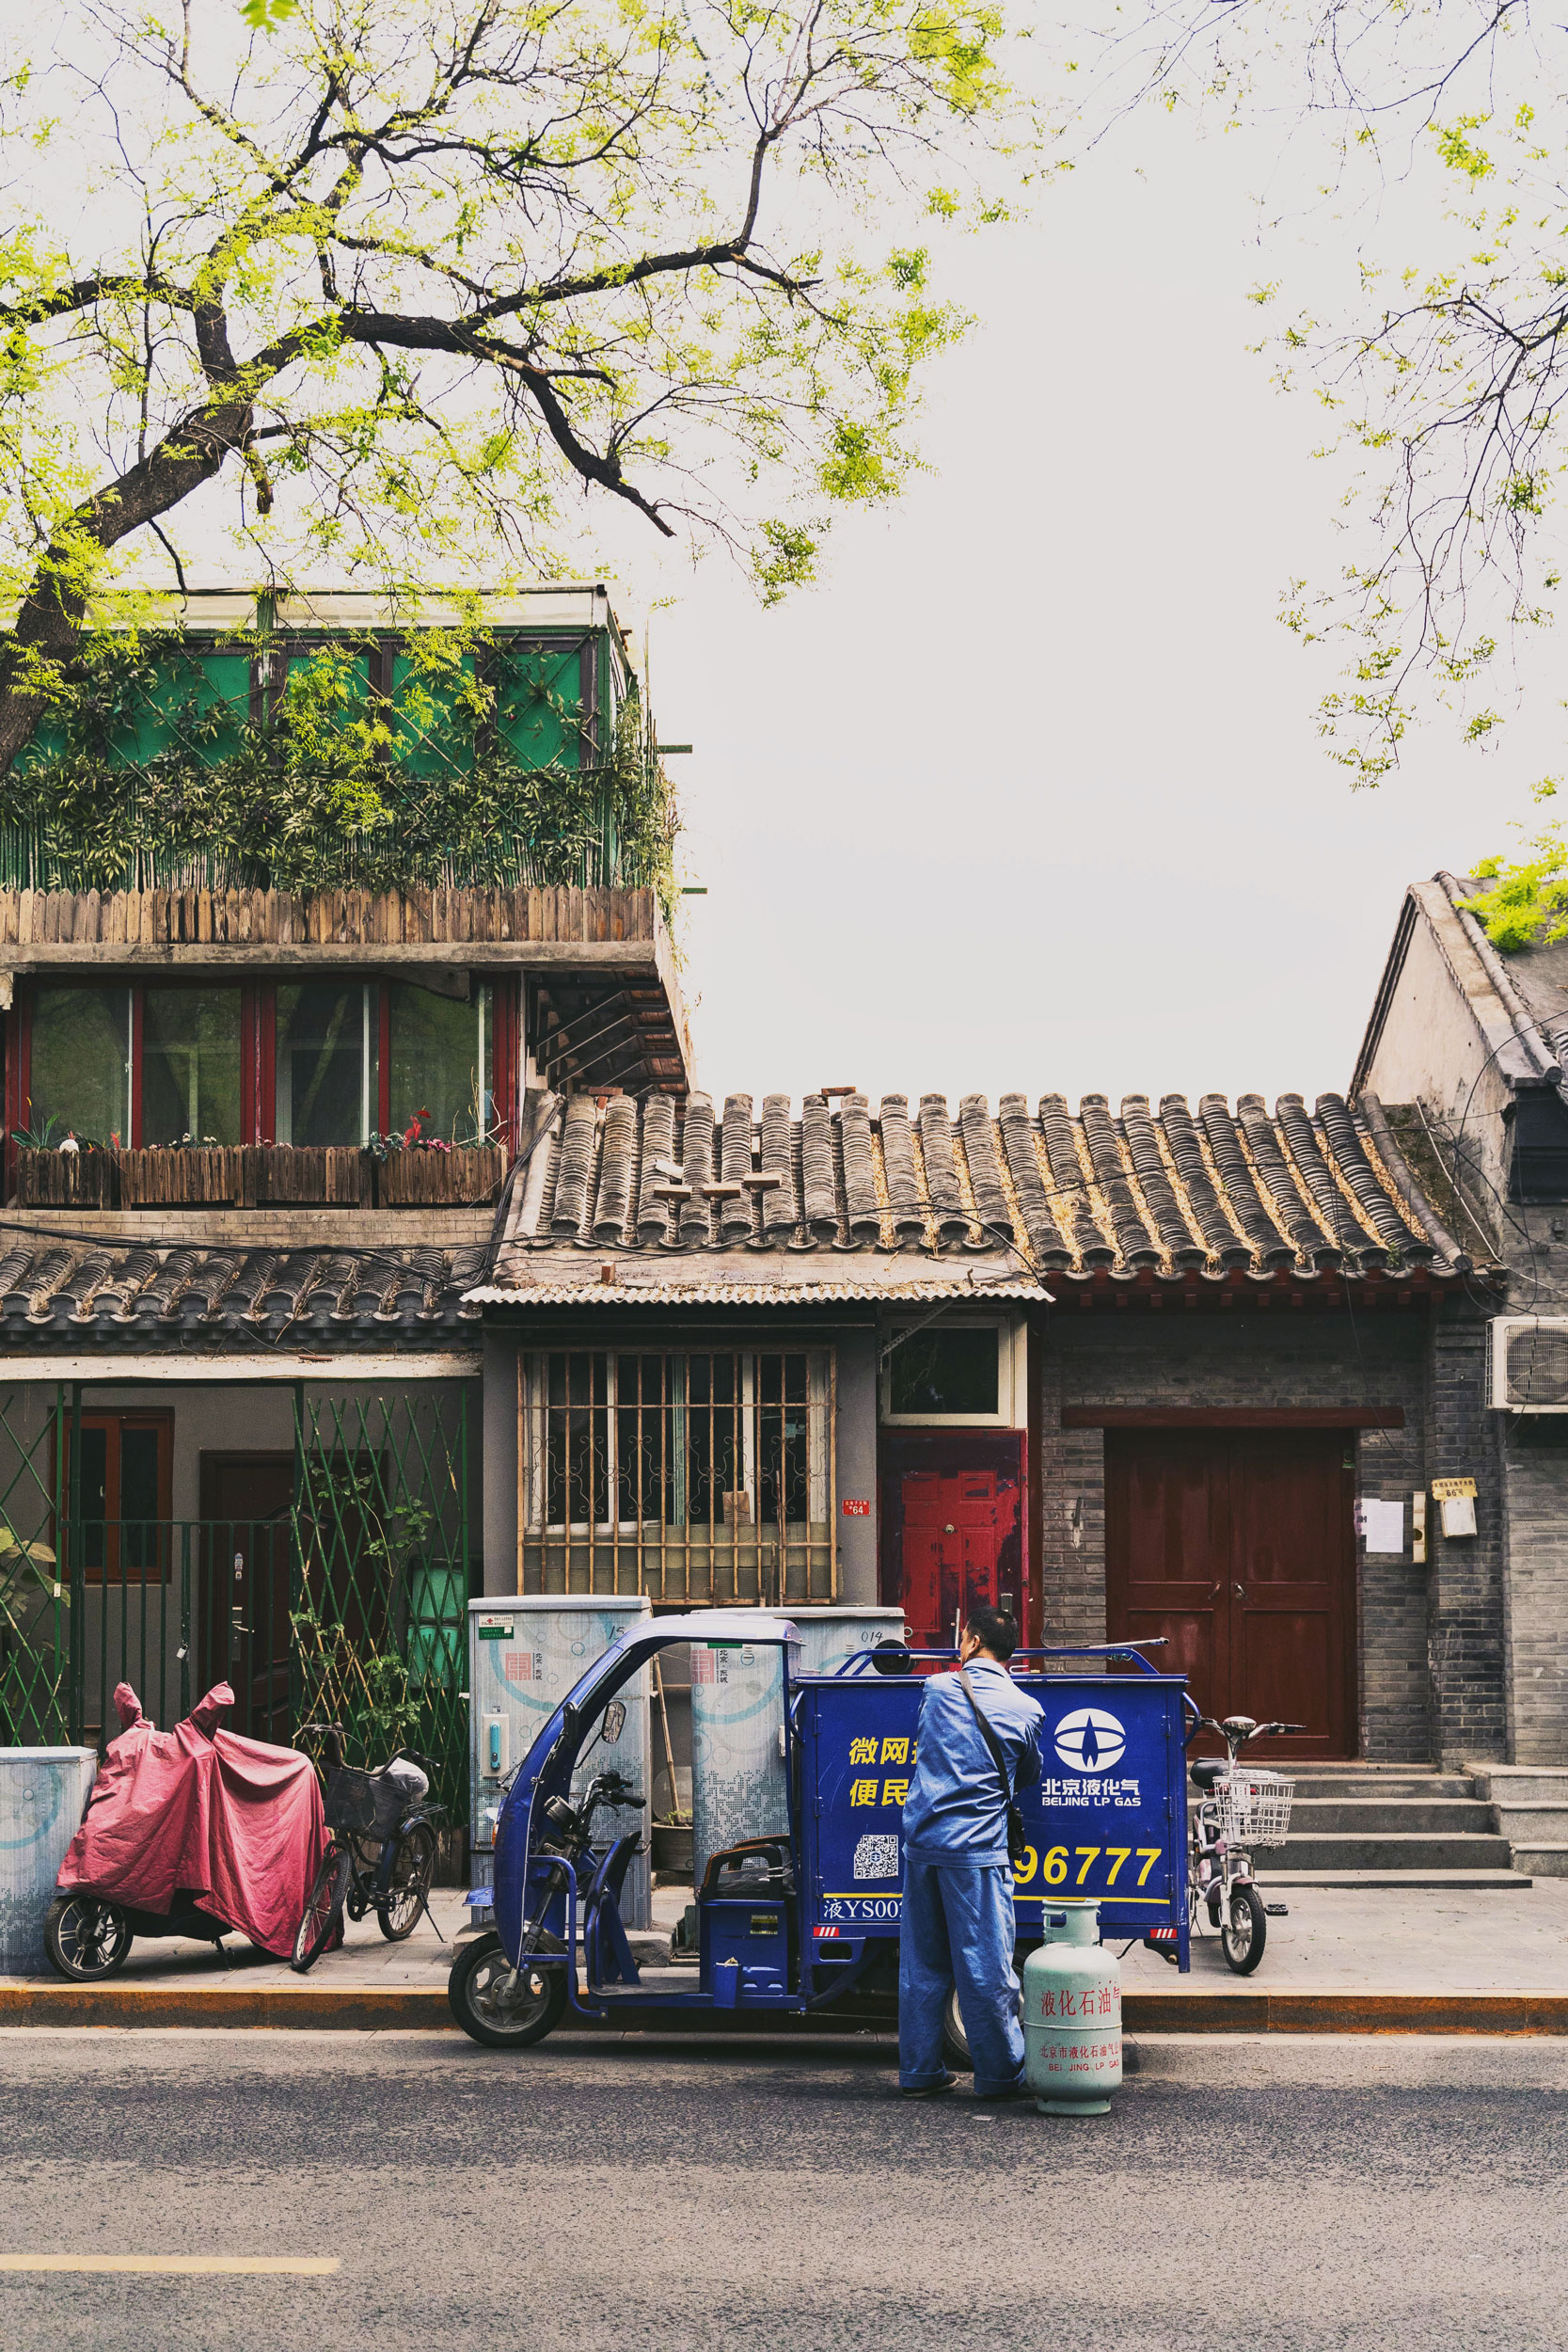 Gas delivery to a home in Beijing's Donghuamen residential district.